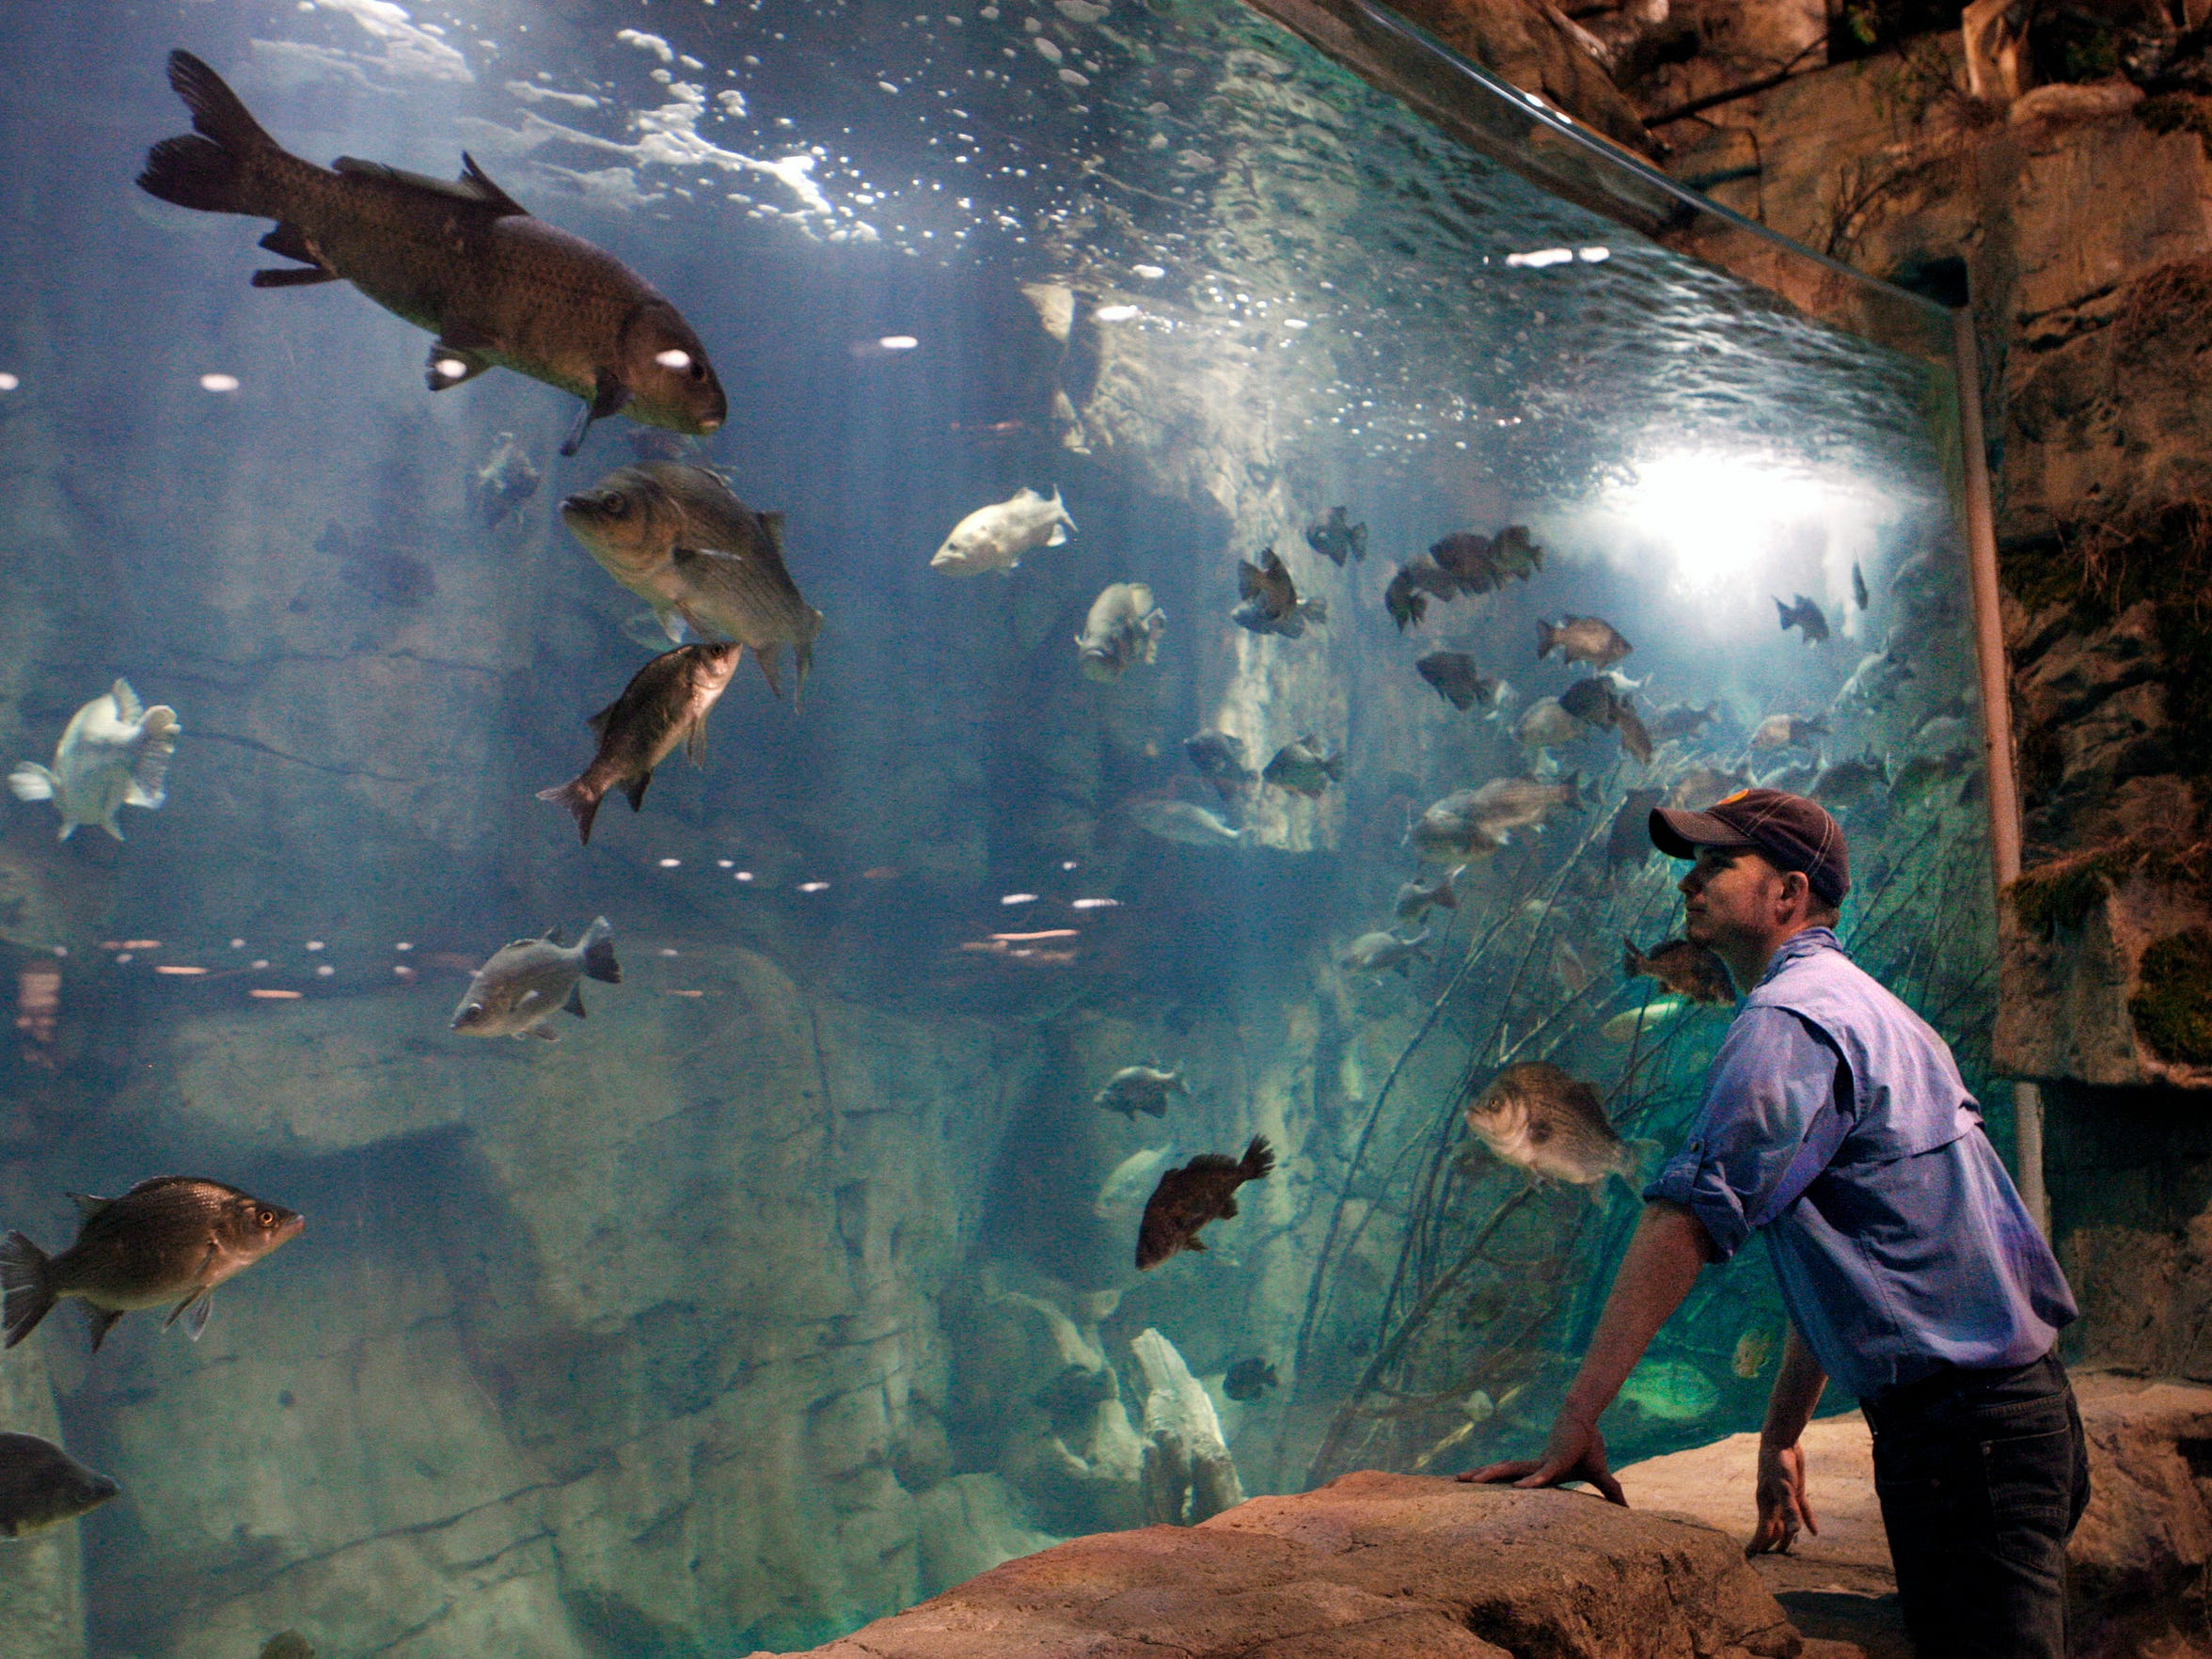 In this April 27, 2015 photo, Raulin Forst looks over an aquarium in the Bass Pro Shop store in Memphis, Tenn. Forst oversees the live exhibits in the store, which include 1,800 fish.